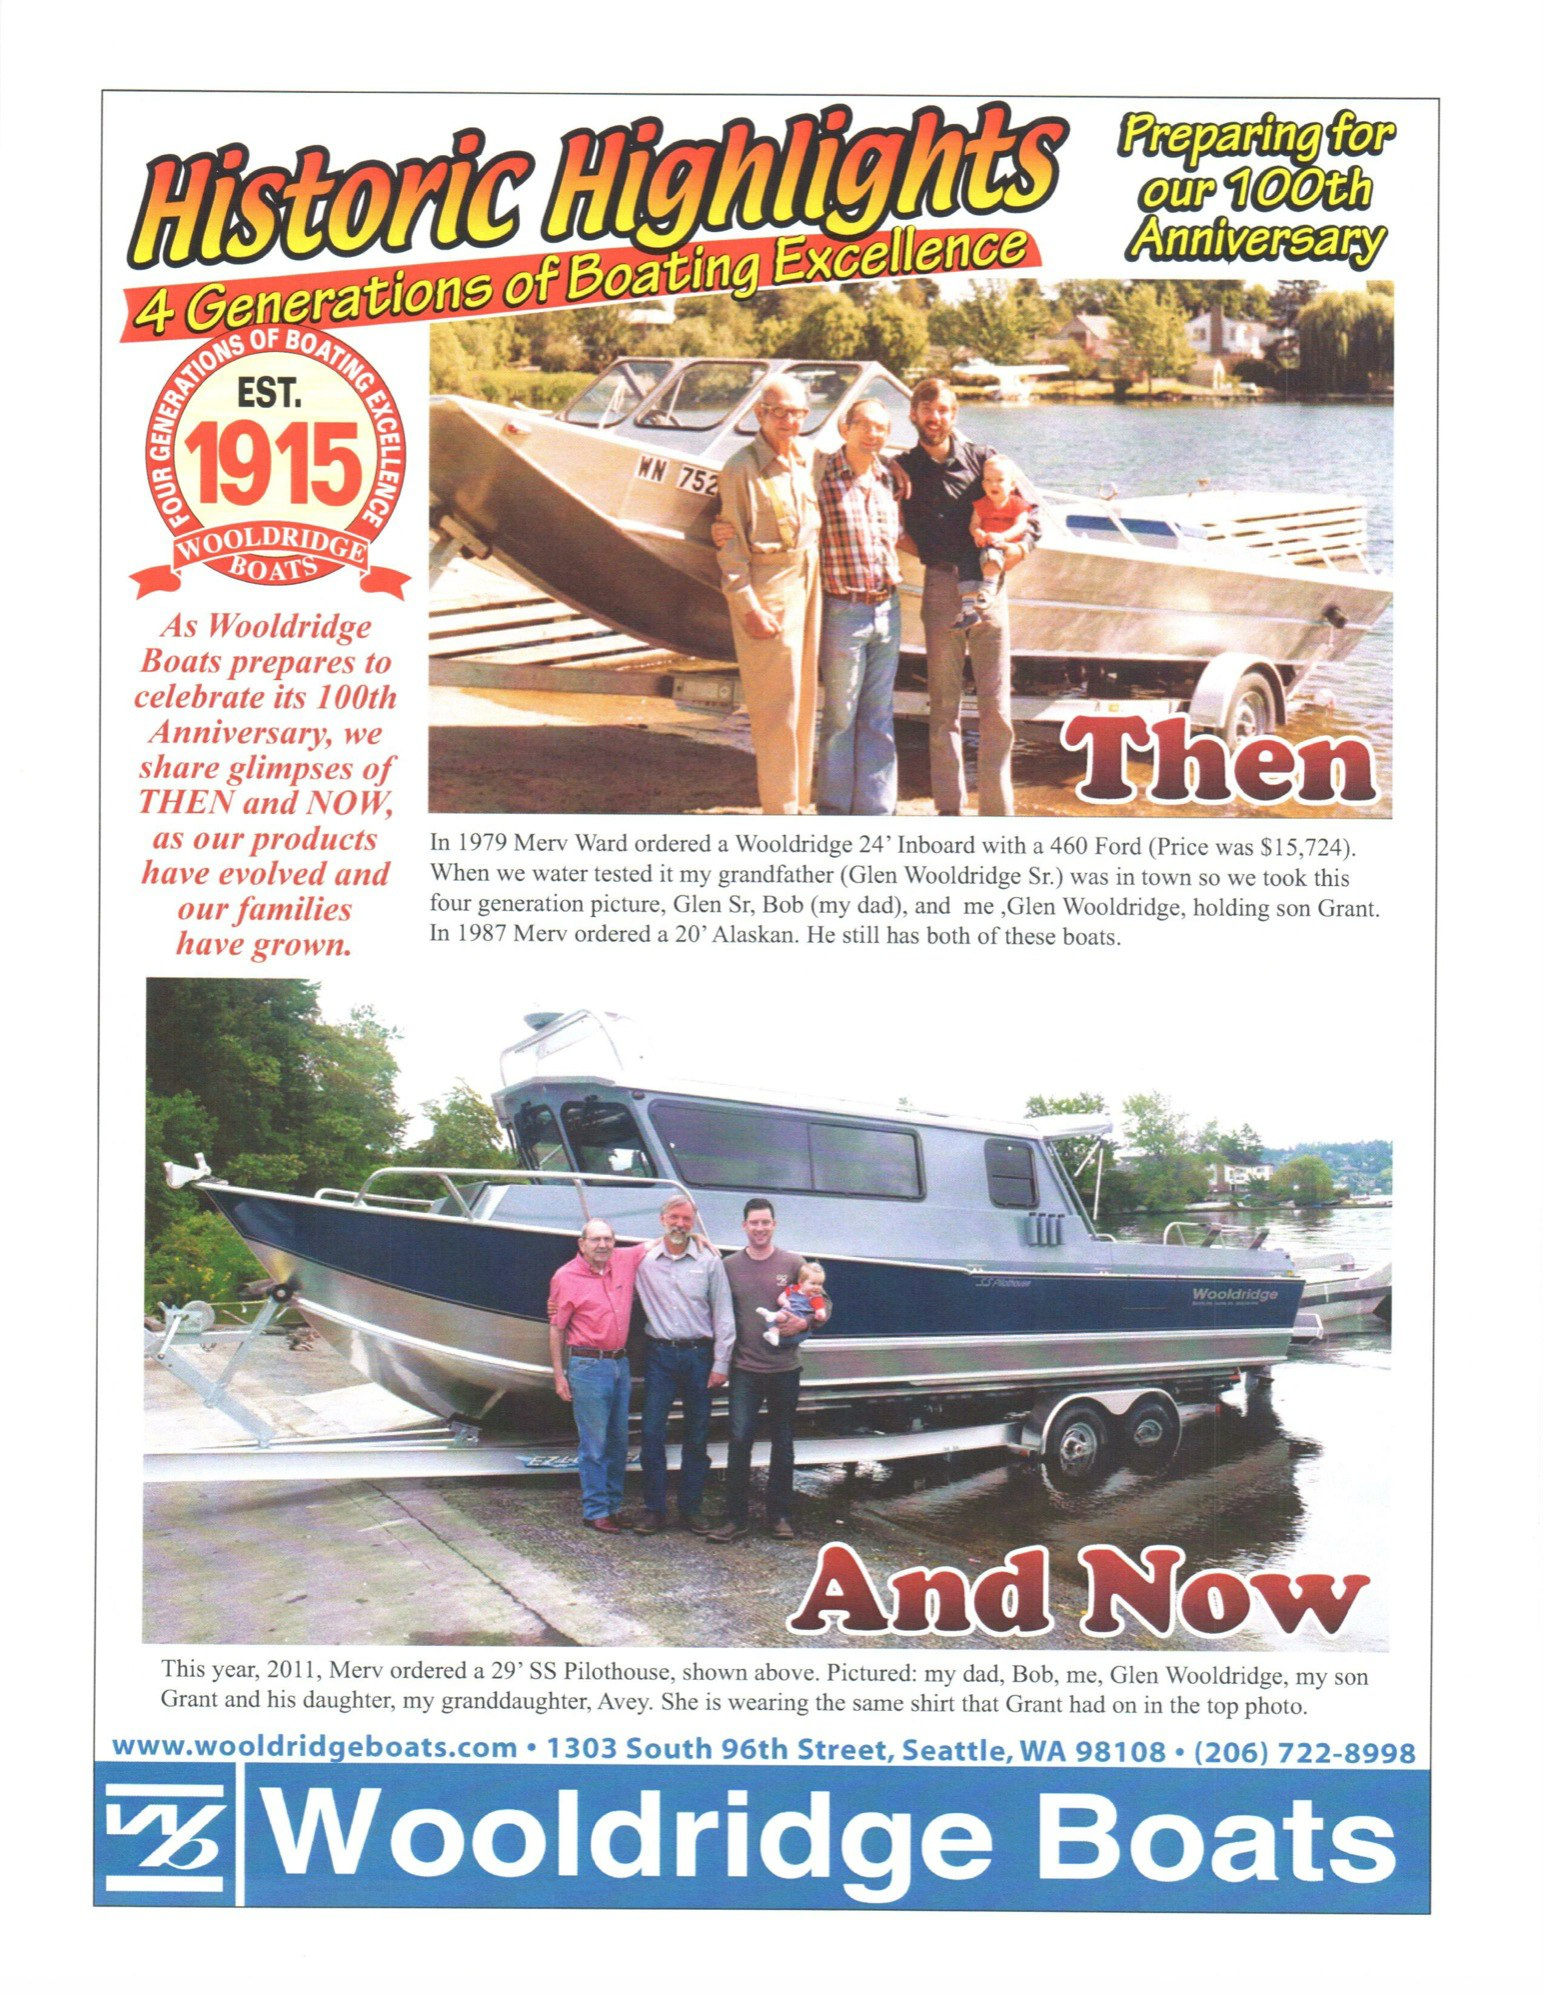 The Family Grows… With Wooldridge Boats - April Vokey